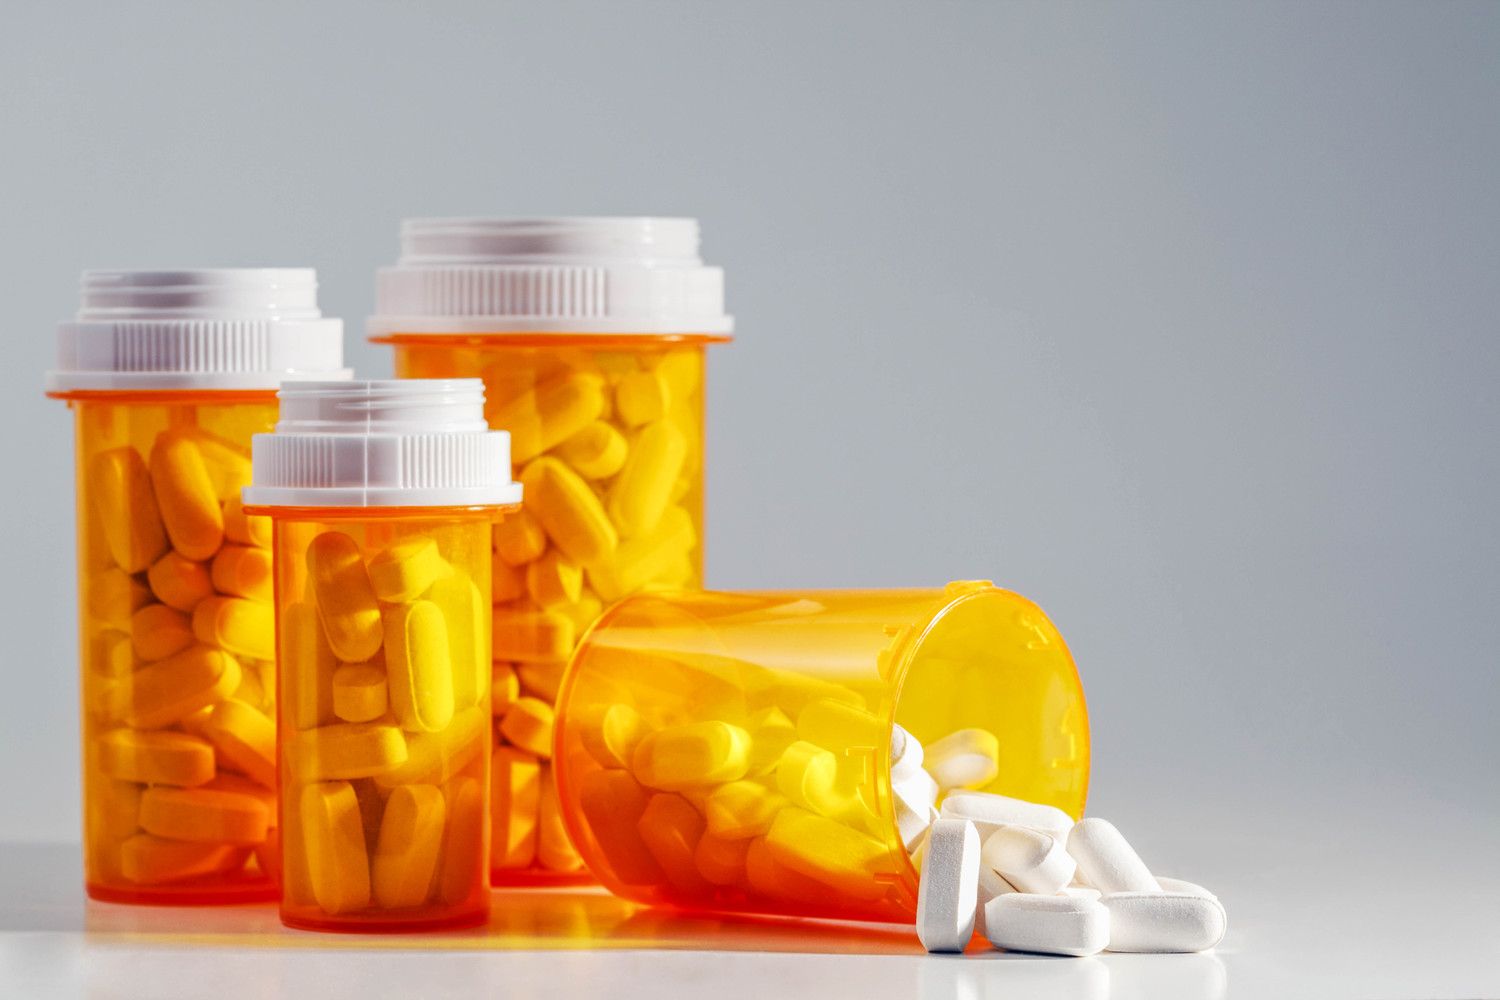 On Saturday, Oct. 28, several sites throughout Williamson County will be partaking in a no-questions-asked Prescription Take Back Day. Officials are requesting the public bring any unused or expired prescription medication, including pet medicine, for disposal.